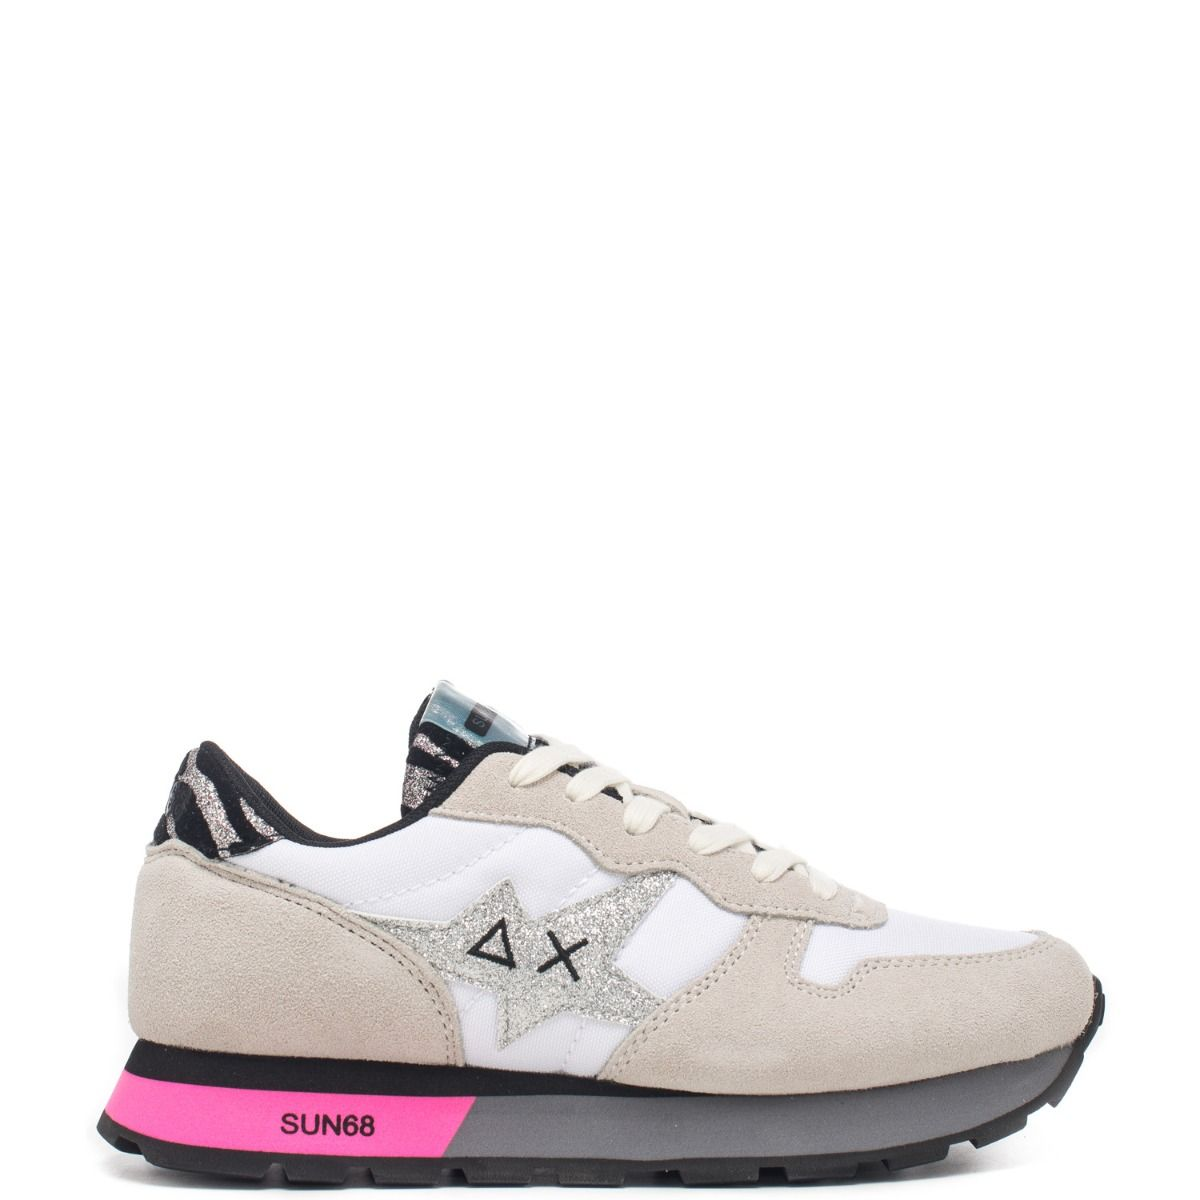 Sun68 sneakers donna Ally Z40212